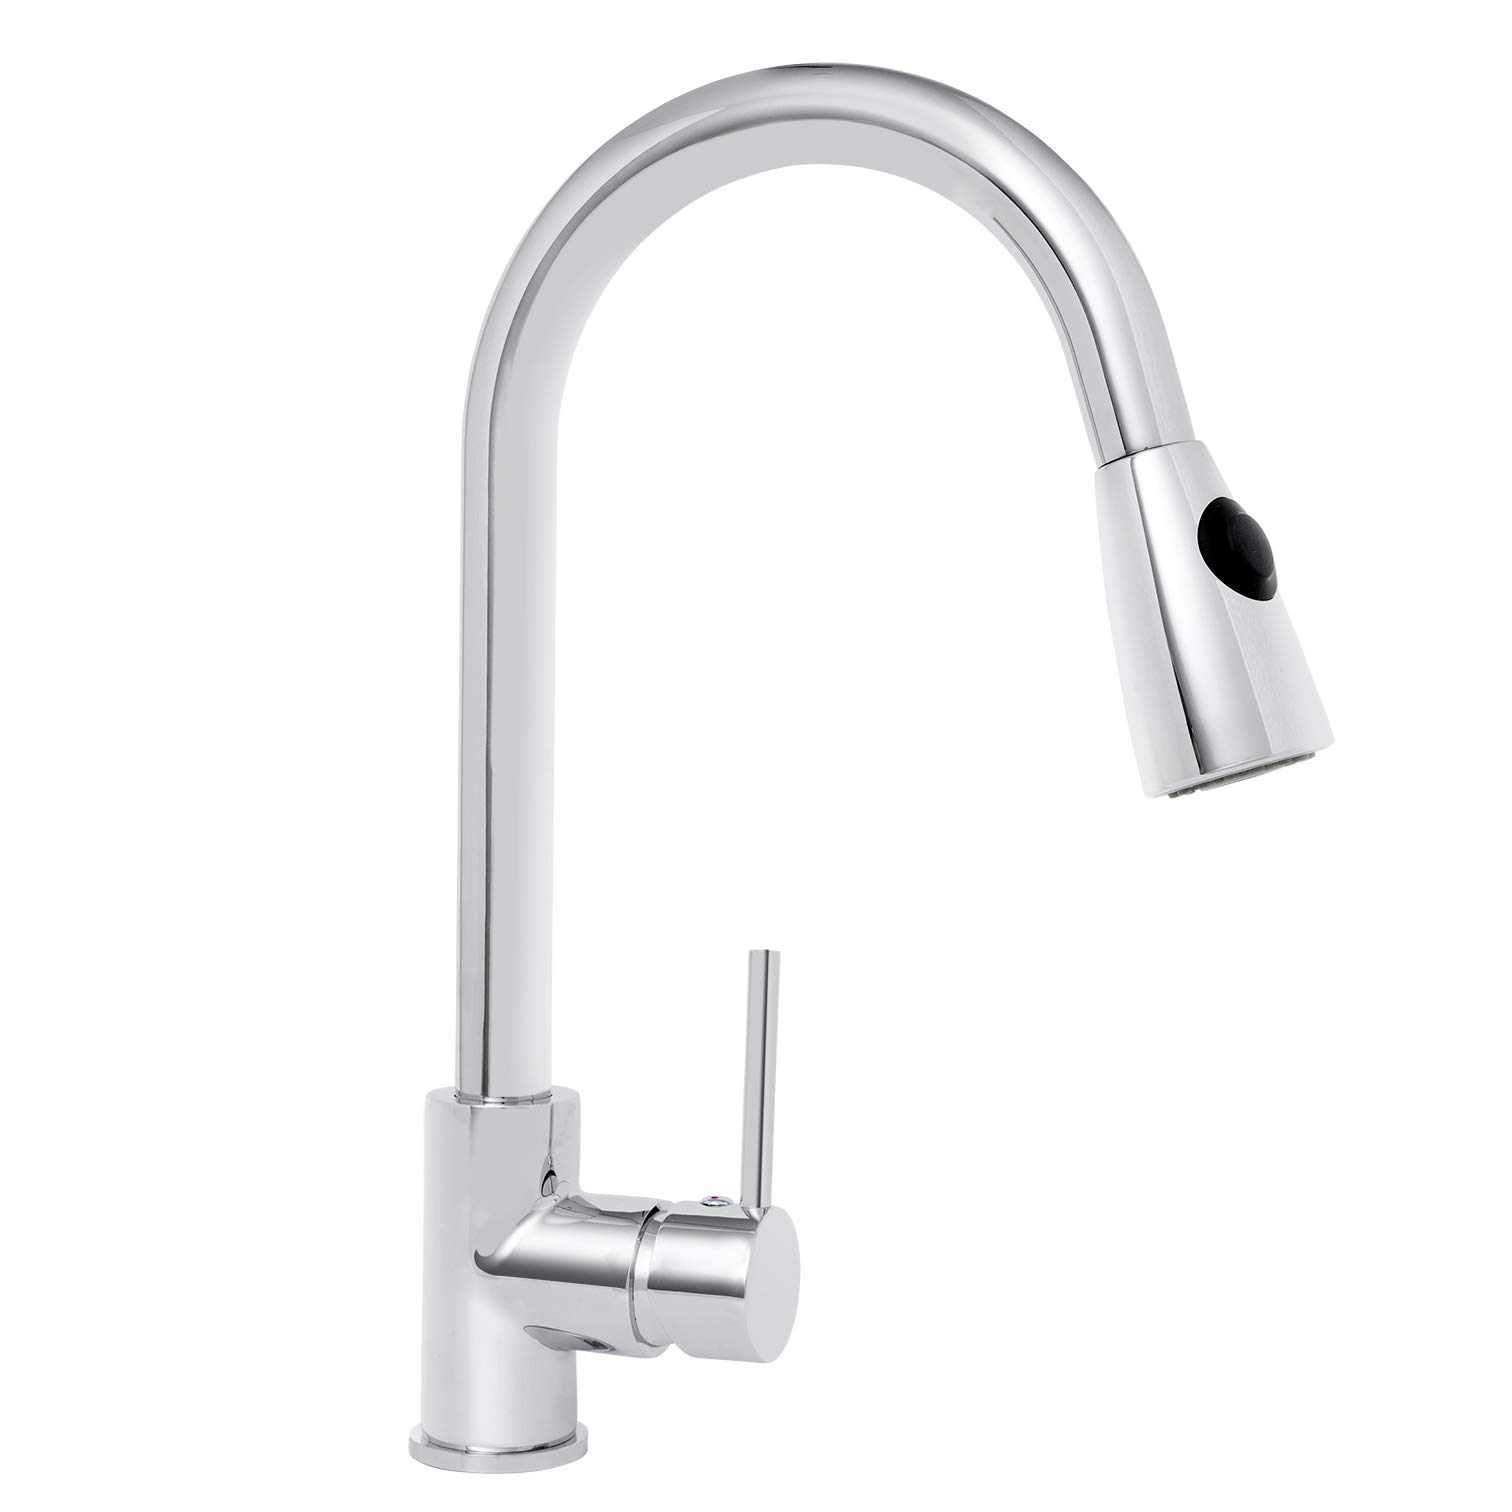 KAIMA Pull Down Sprayer Kitchen Faucet Single Handle Sport-Free Brass  Chrome Finished